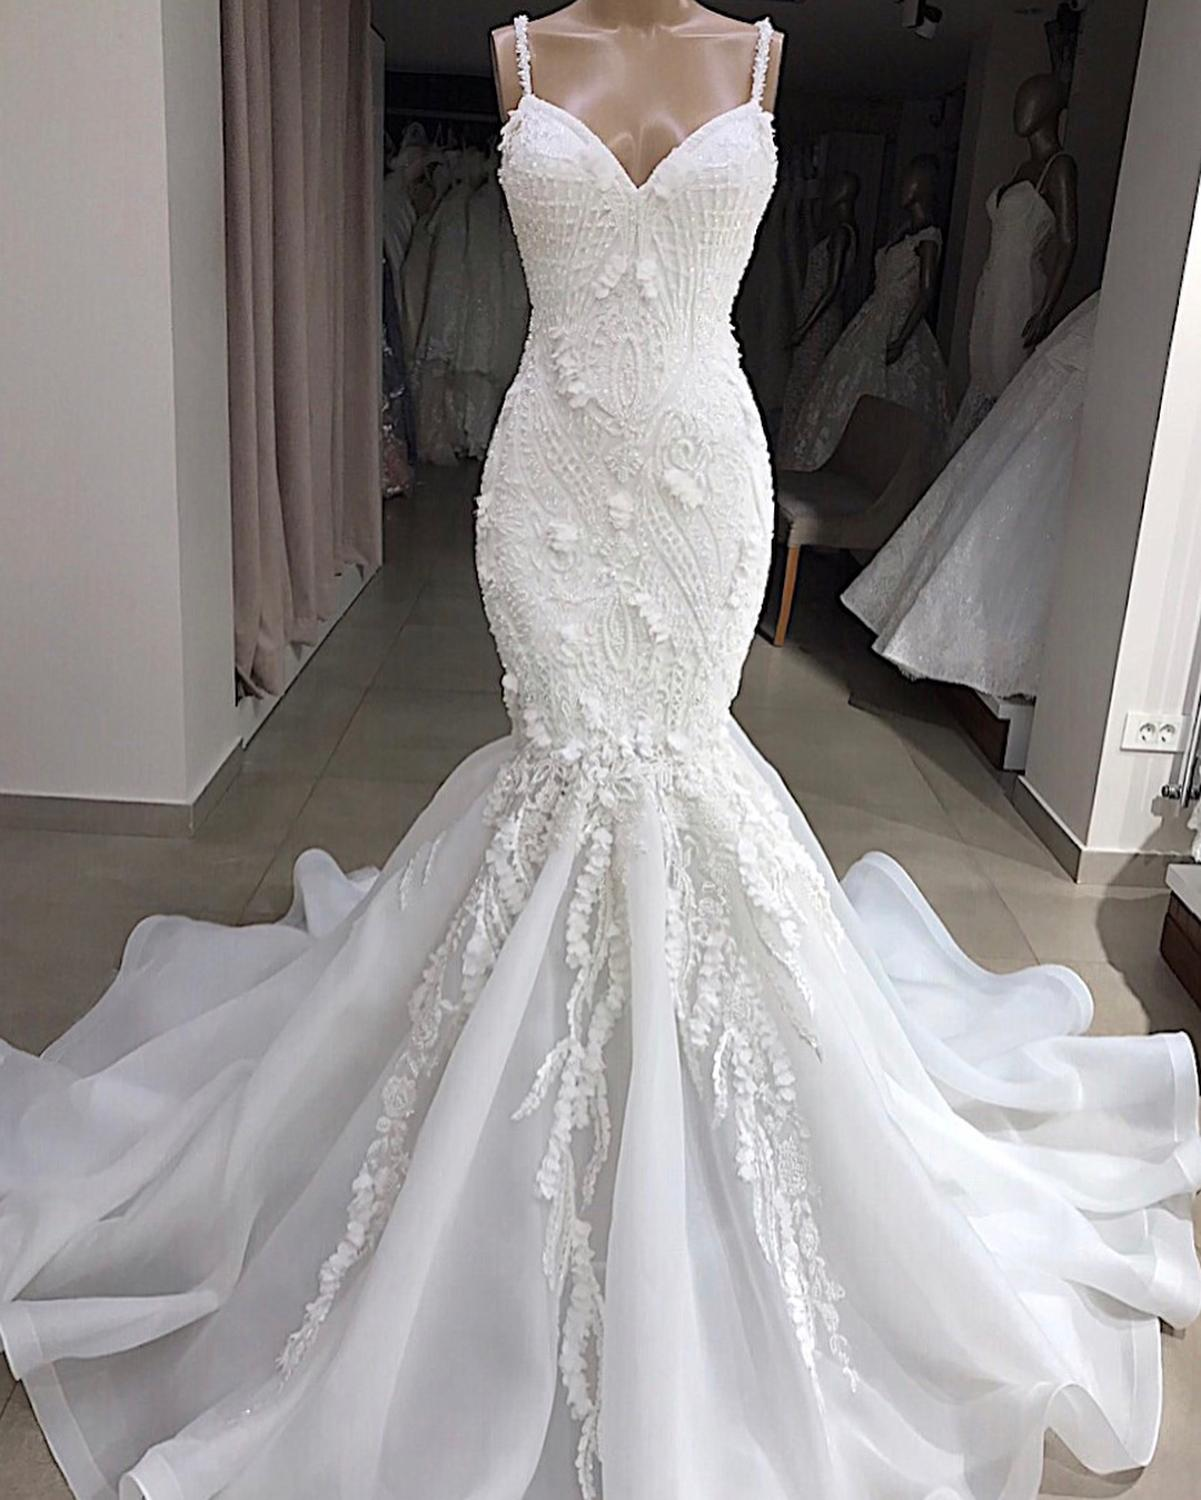 Vestido Sereia Sevy Spaghetti Strap Mermaid Wedding Gowns 2019 Beading Lace Applique Backless  Sweetheart Neck Dress Wedding